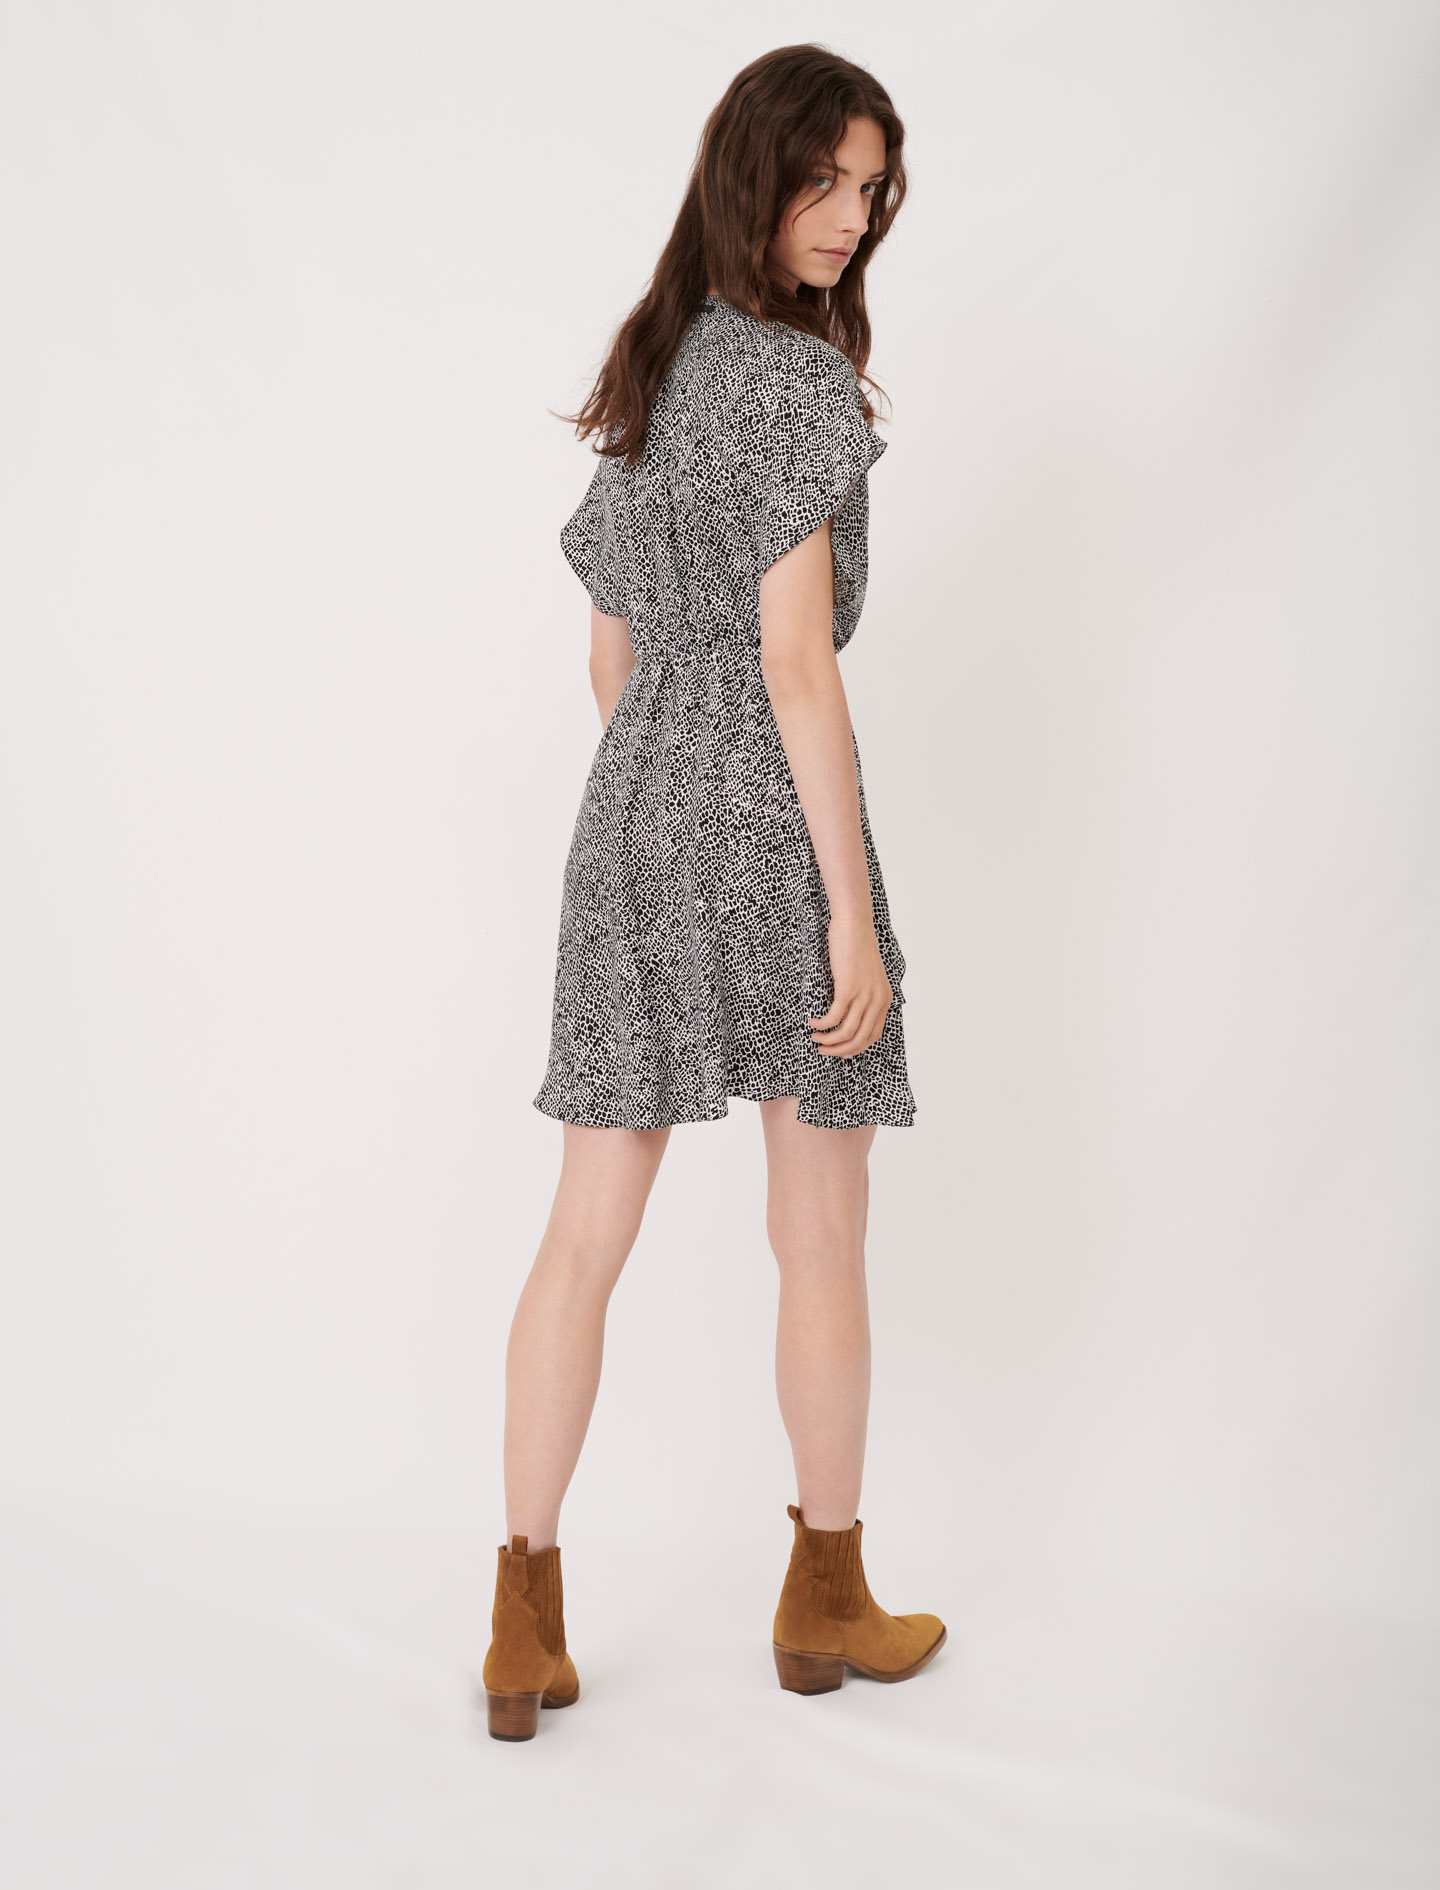 Asymmetric animal print dress - Multiclr